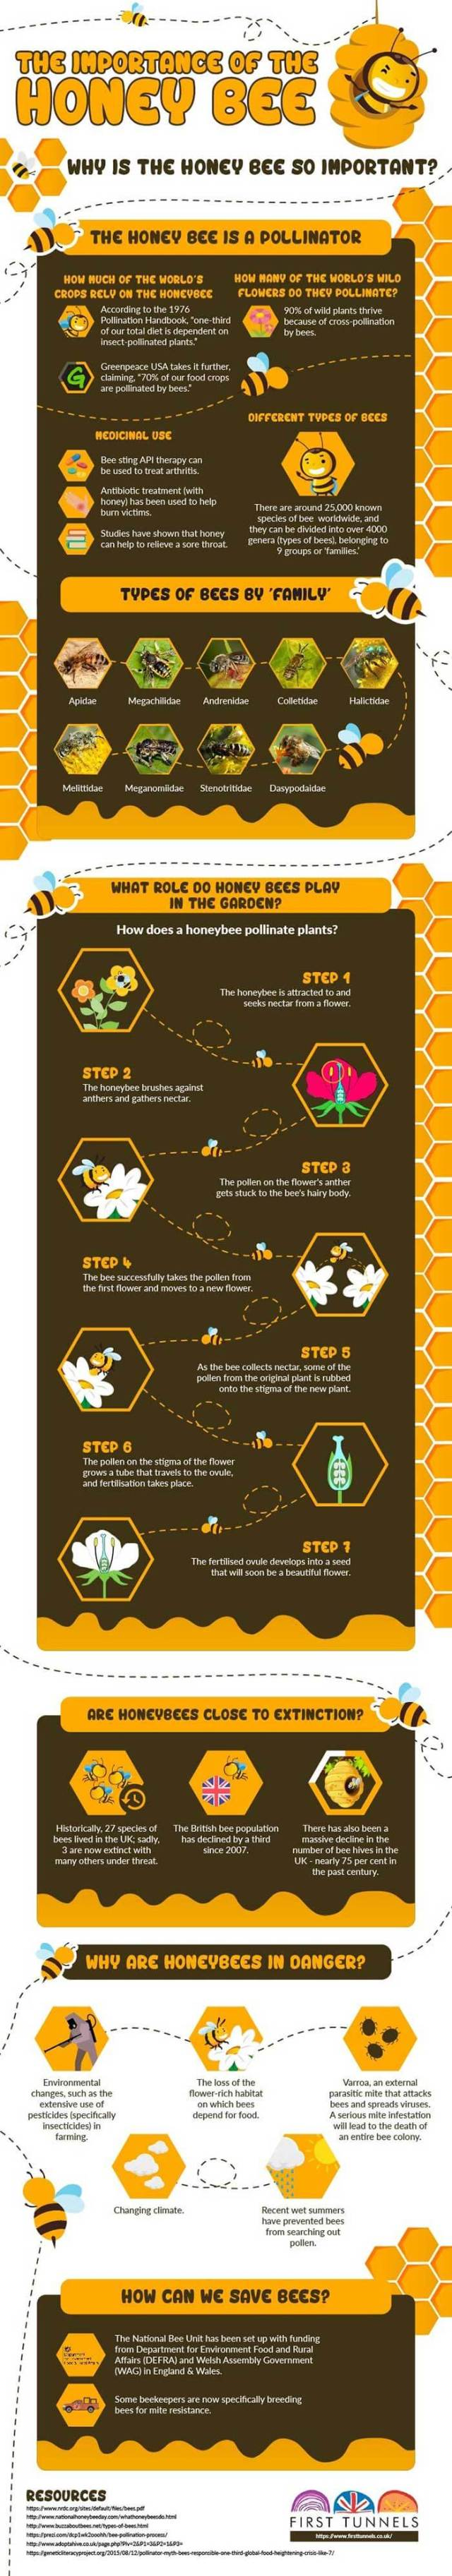 The Importance Of The Honey Bee (Infographic)